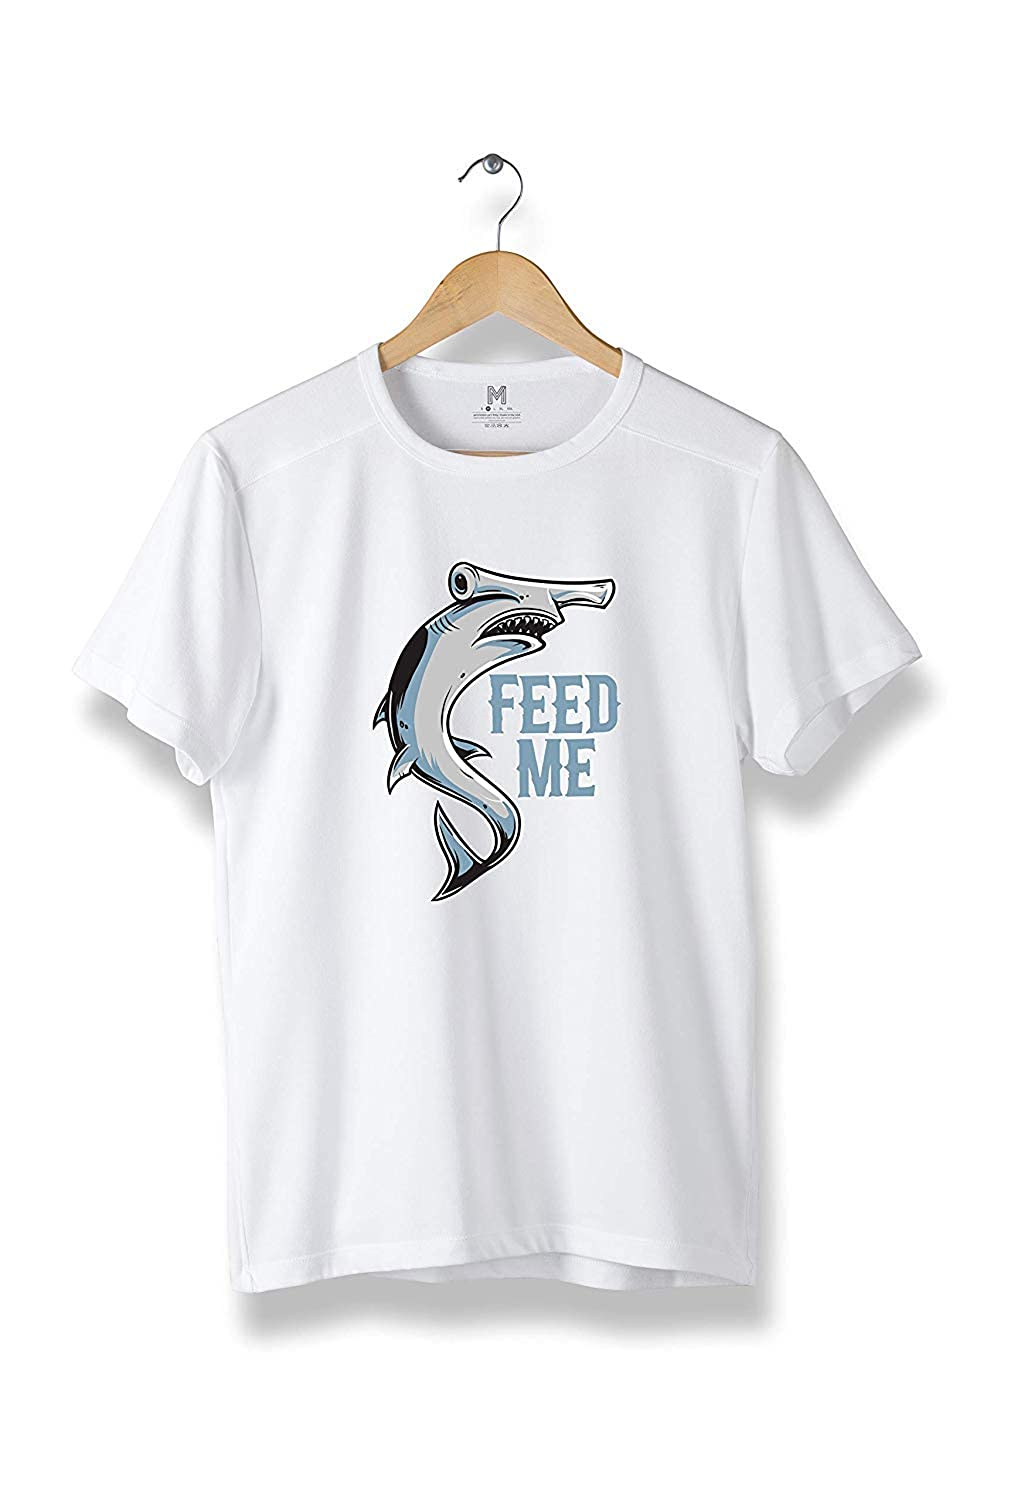 R04 Shark Feed Me T-Shirt Modern Cool Tees for Men